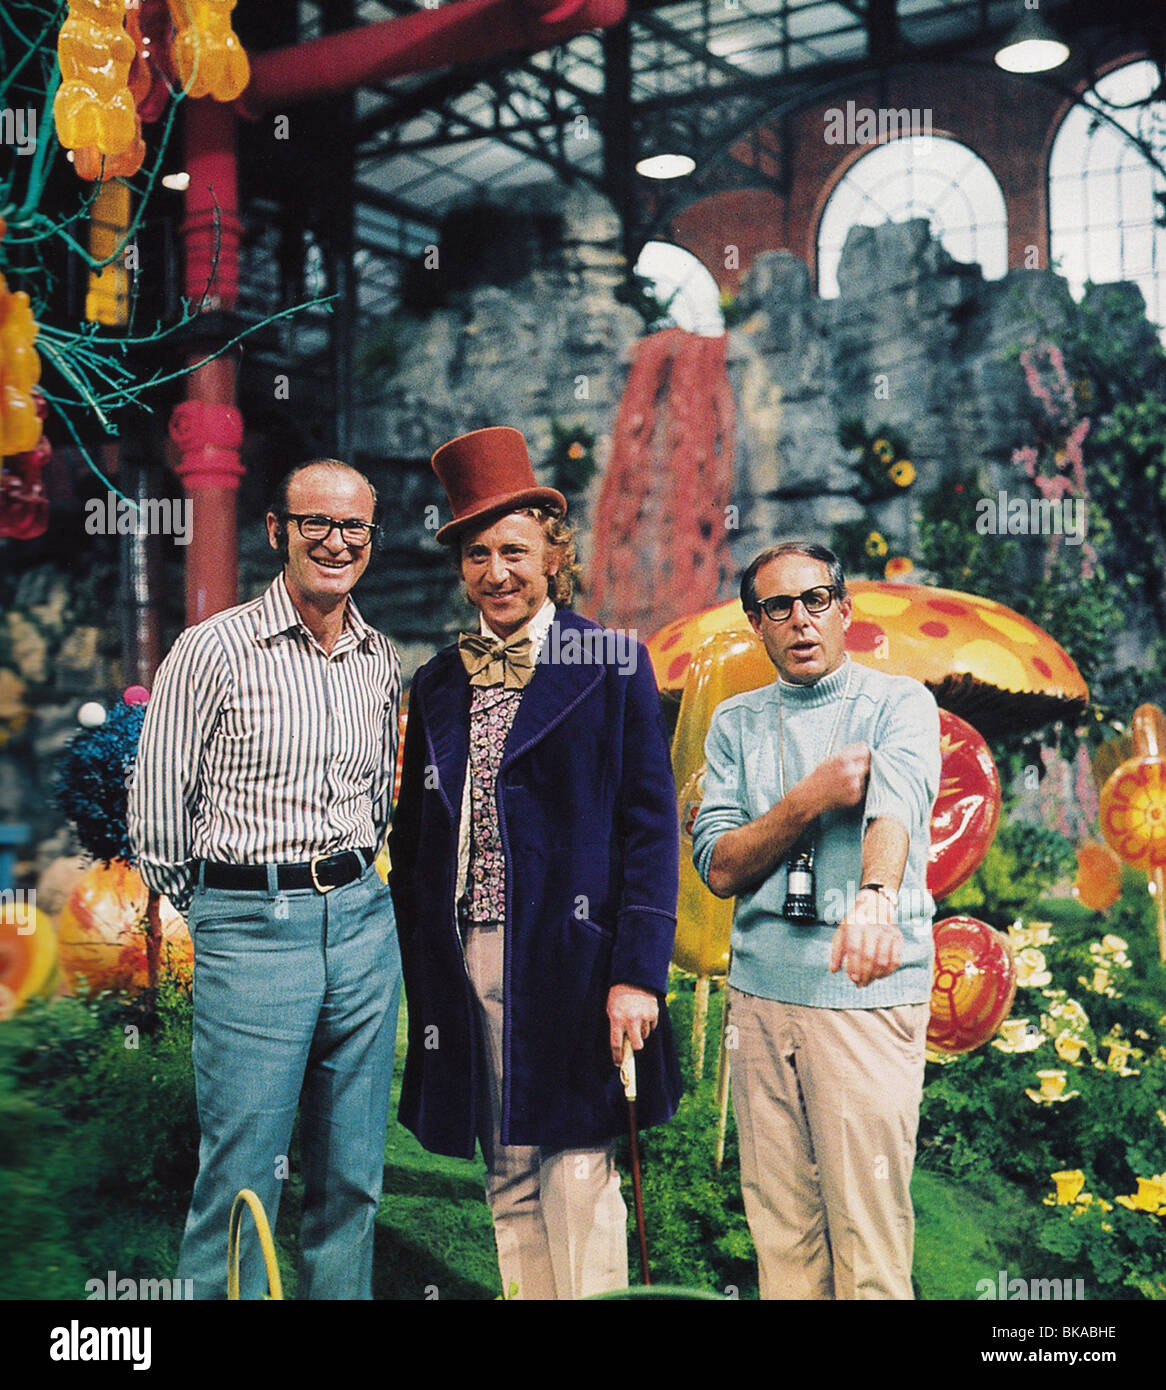 willy wonka and the chocolate factory year usa director  willy wonka and the chocolate factory year 1971 usa director mel stuart gene wilder mel stuart shooting picture